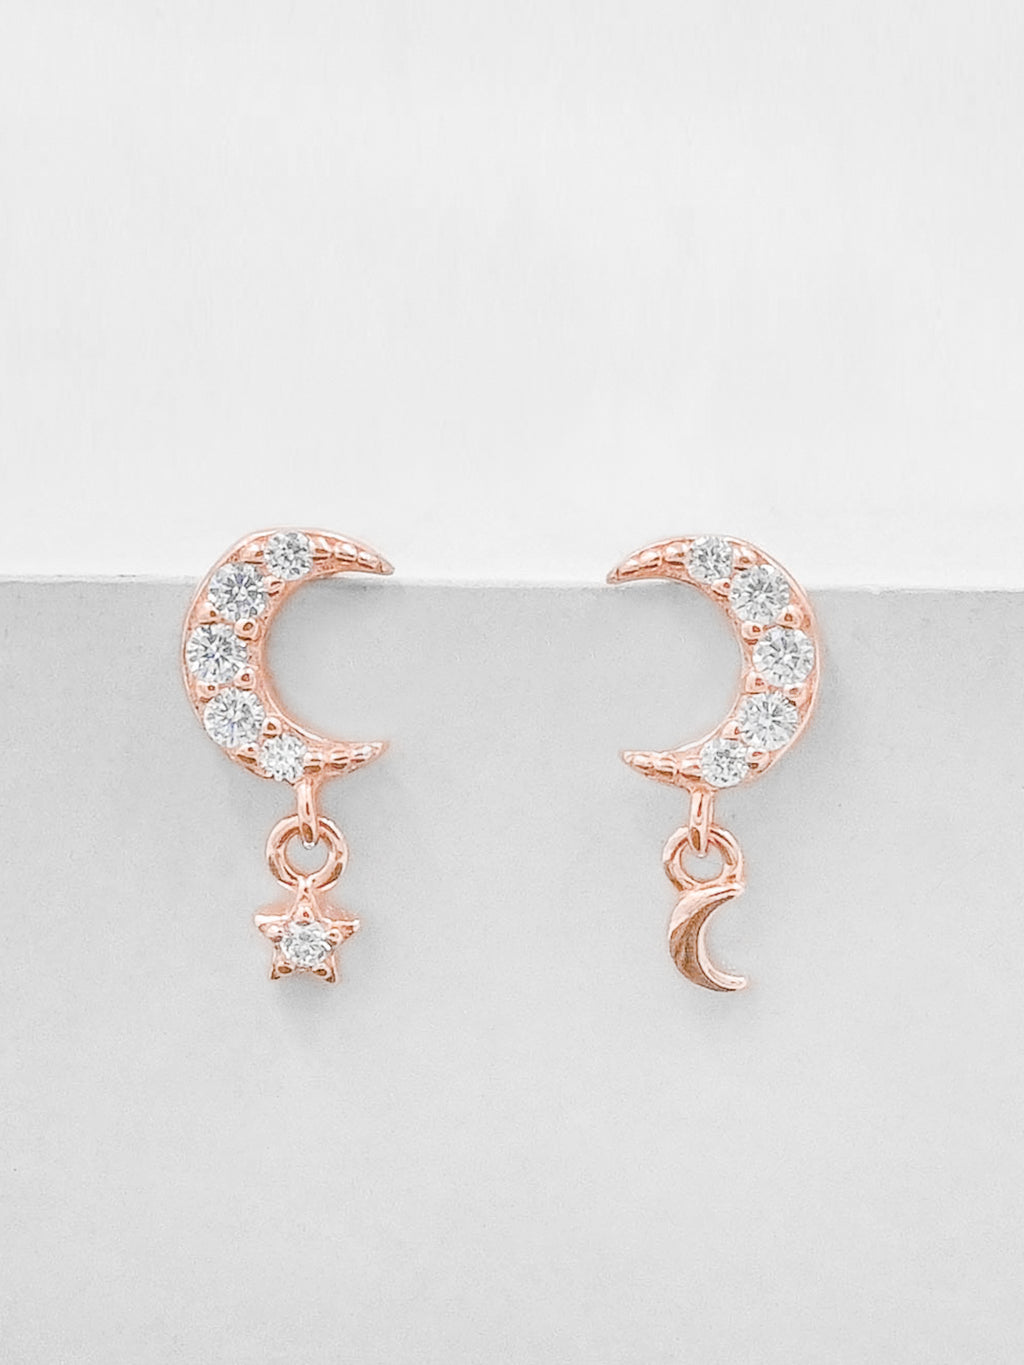 Rose Gold  Plated Minimalistic Dangle Moon and Star CZ Dainty Earrings by The Faint hearted Jewelry